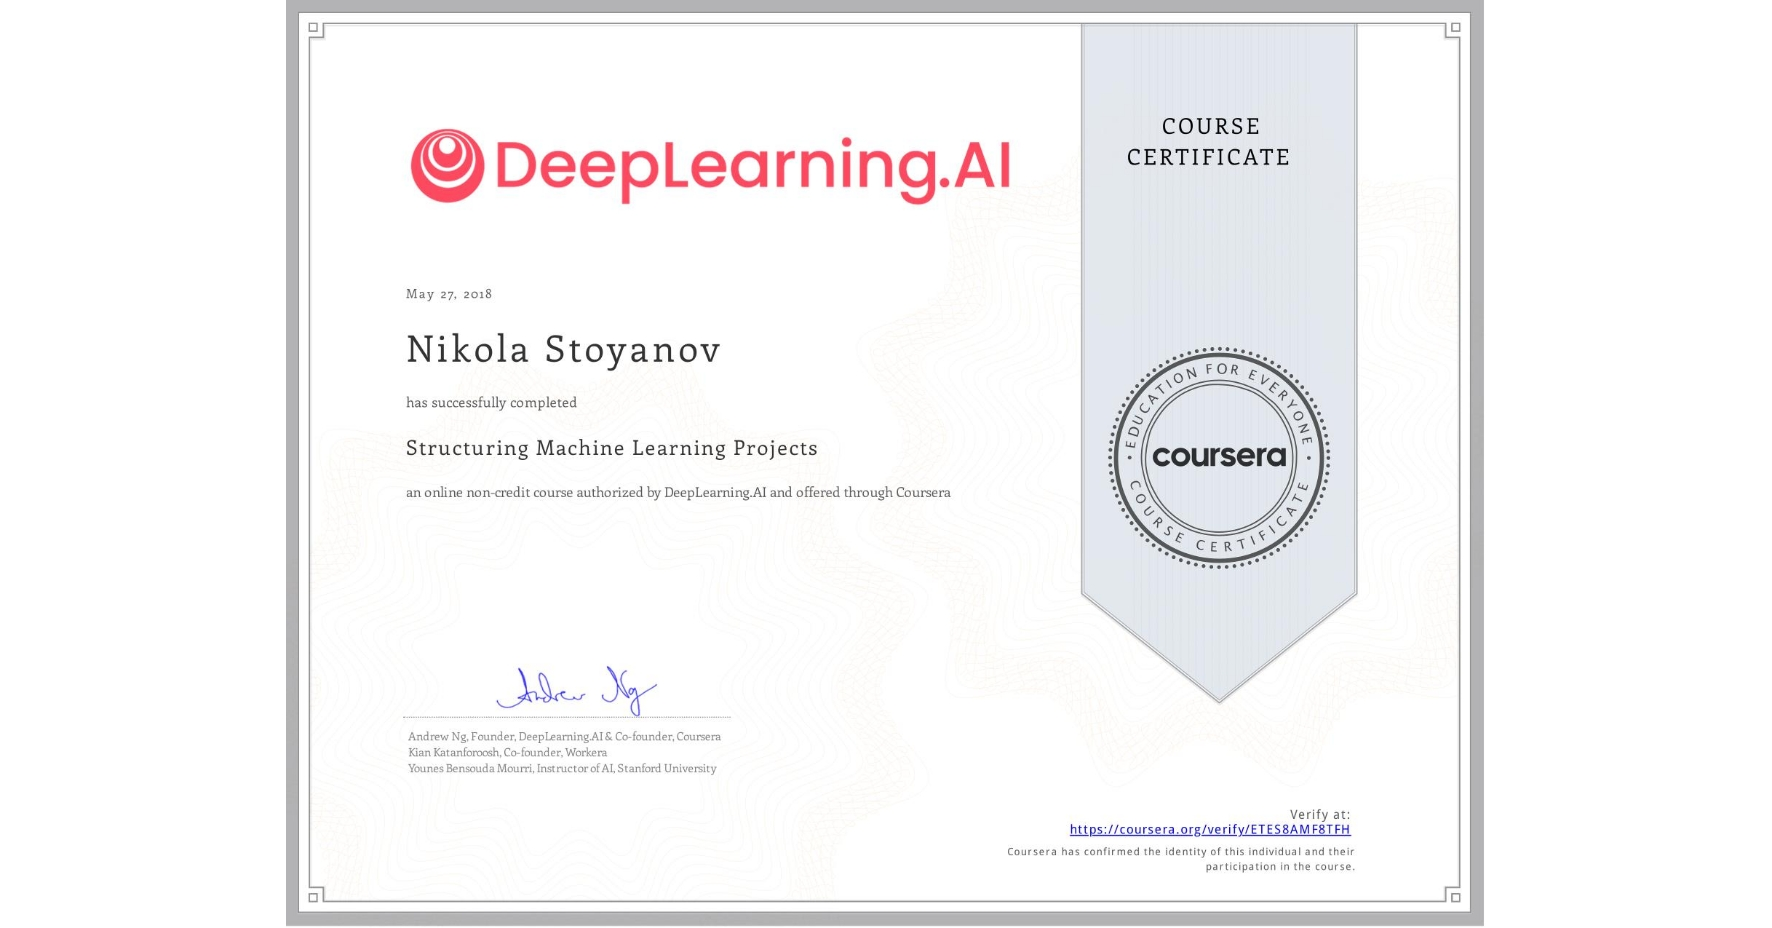 View certificate for Nikola Stoyanov, Structuring Machine Learning Projects, an online non-credit course authorized by DeepLearning.AI and offered through Coursera